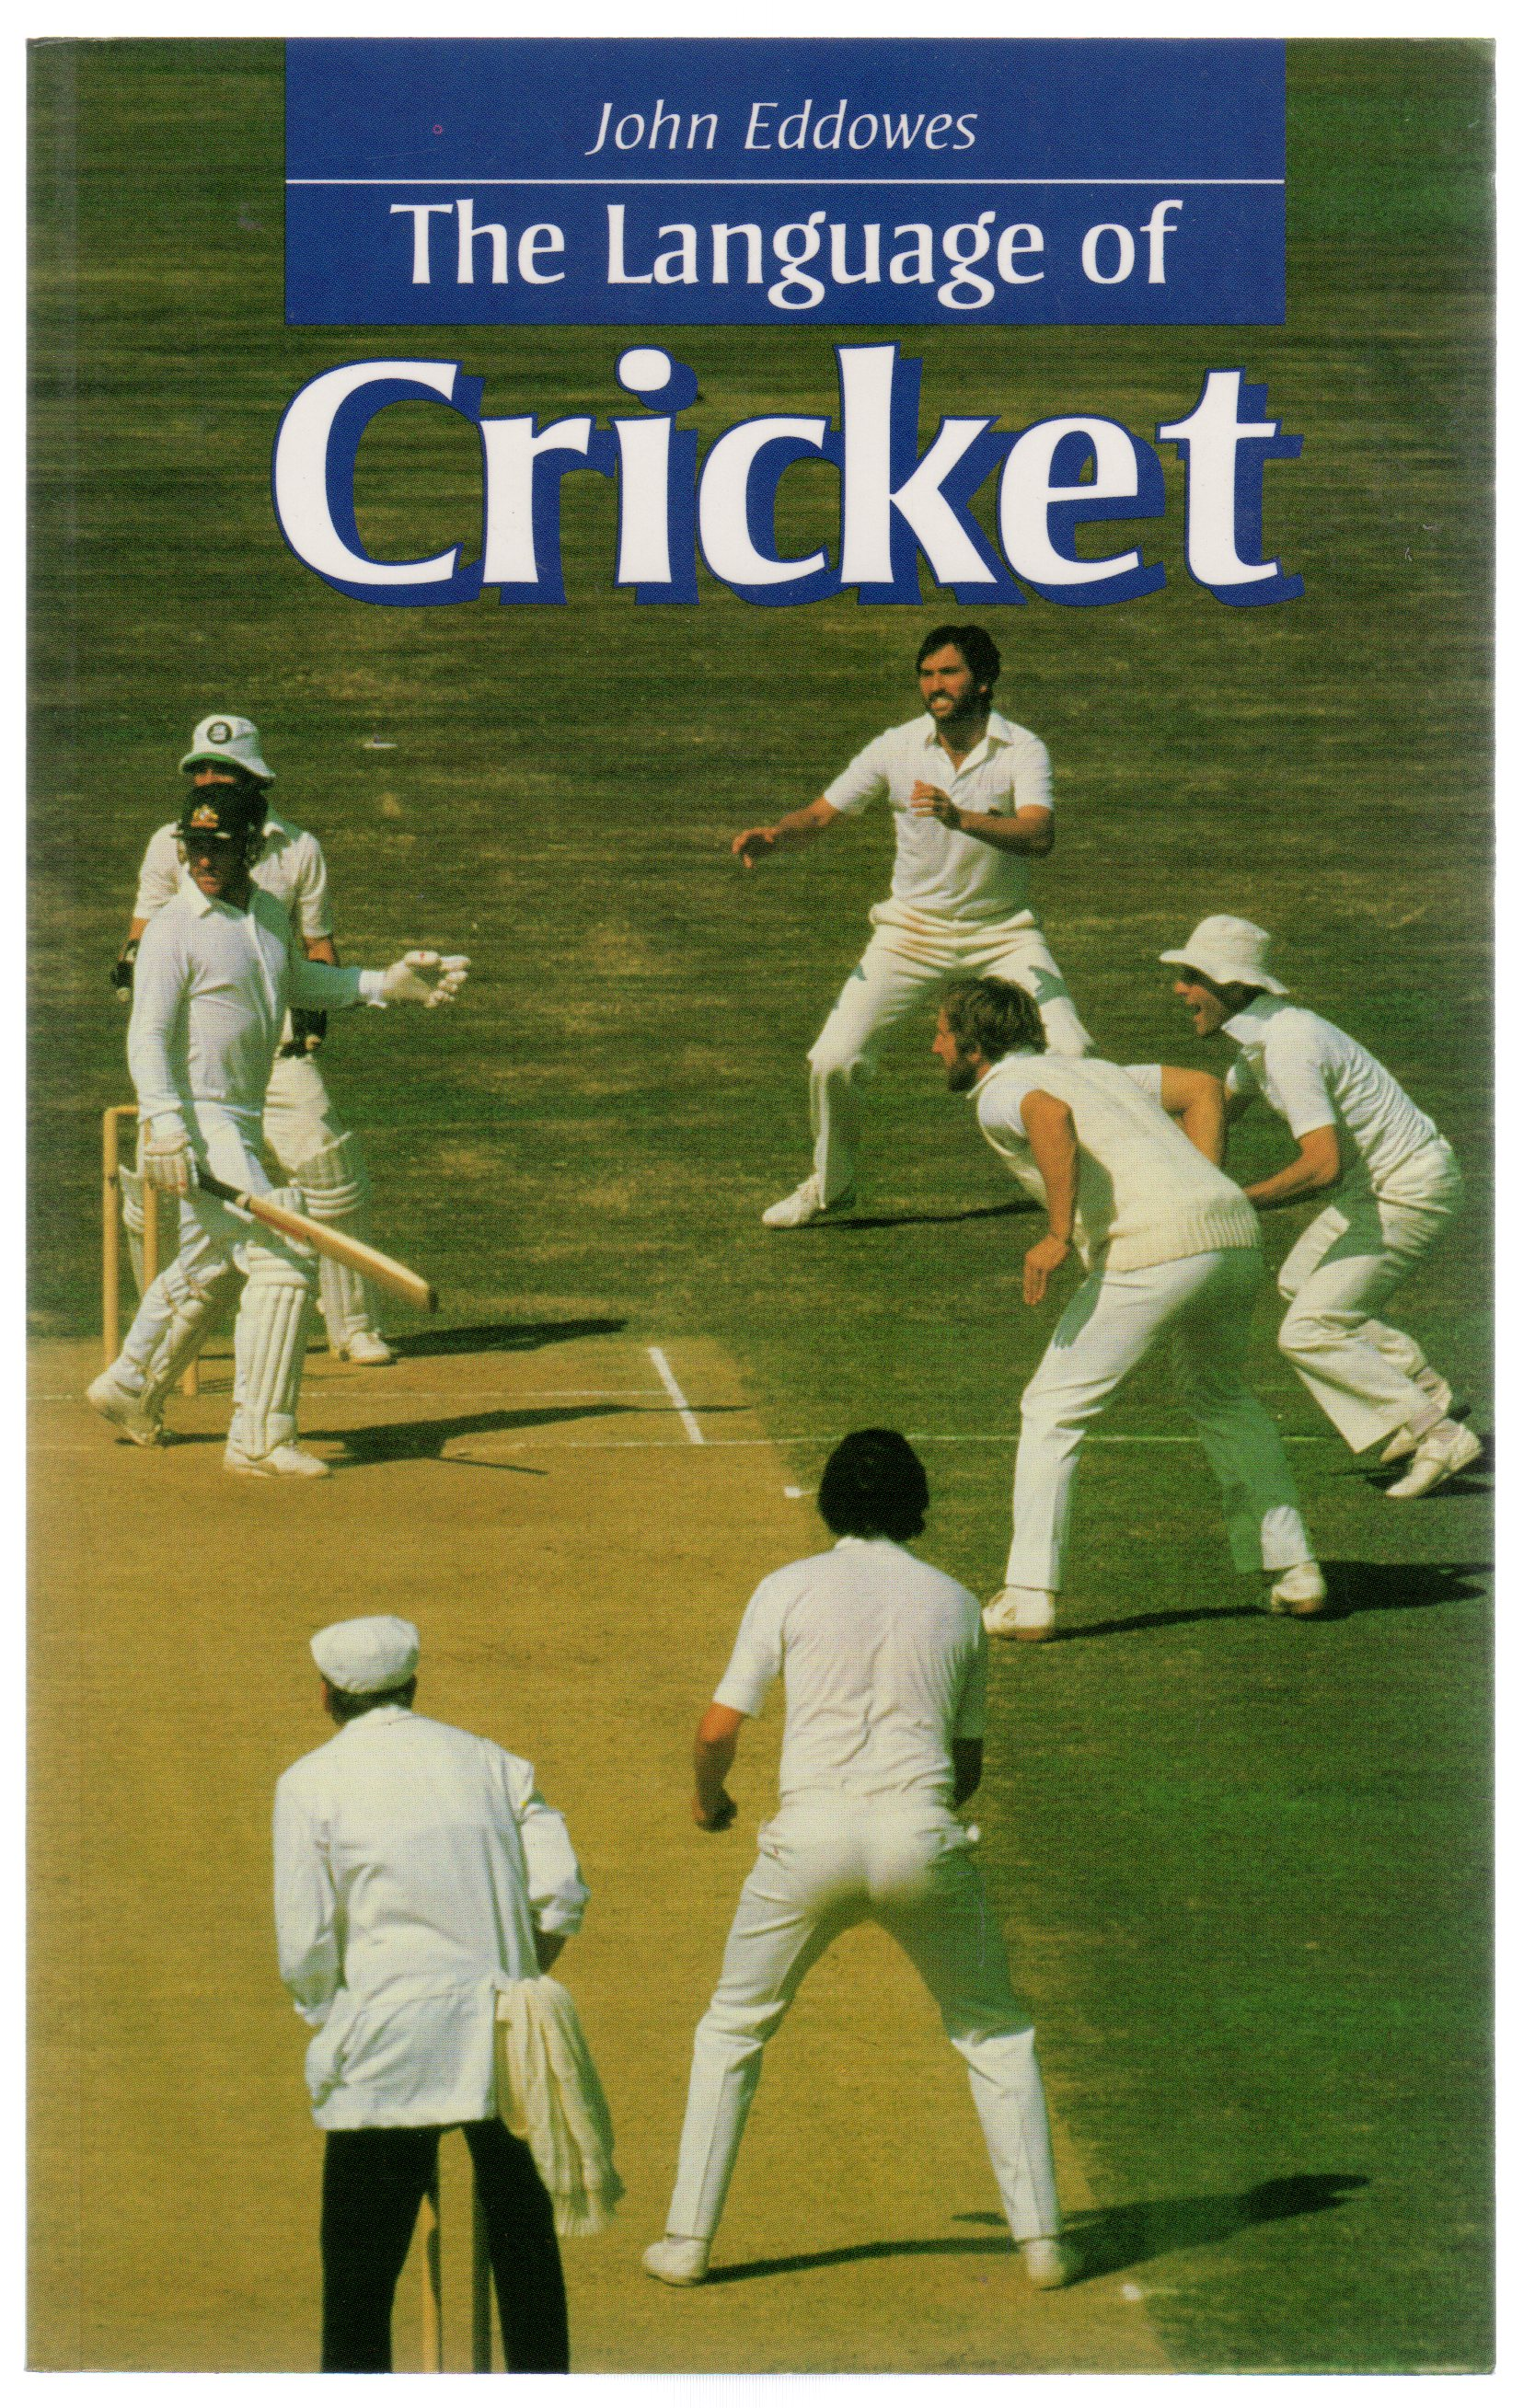 Image for The Language of Cricket (SIGNED COPY)